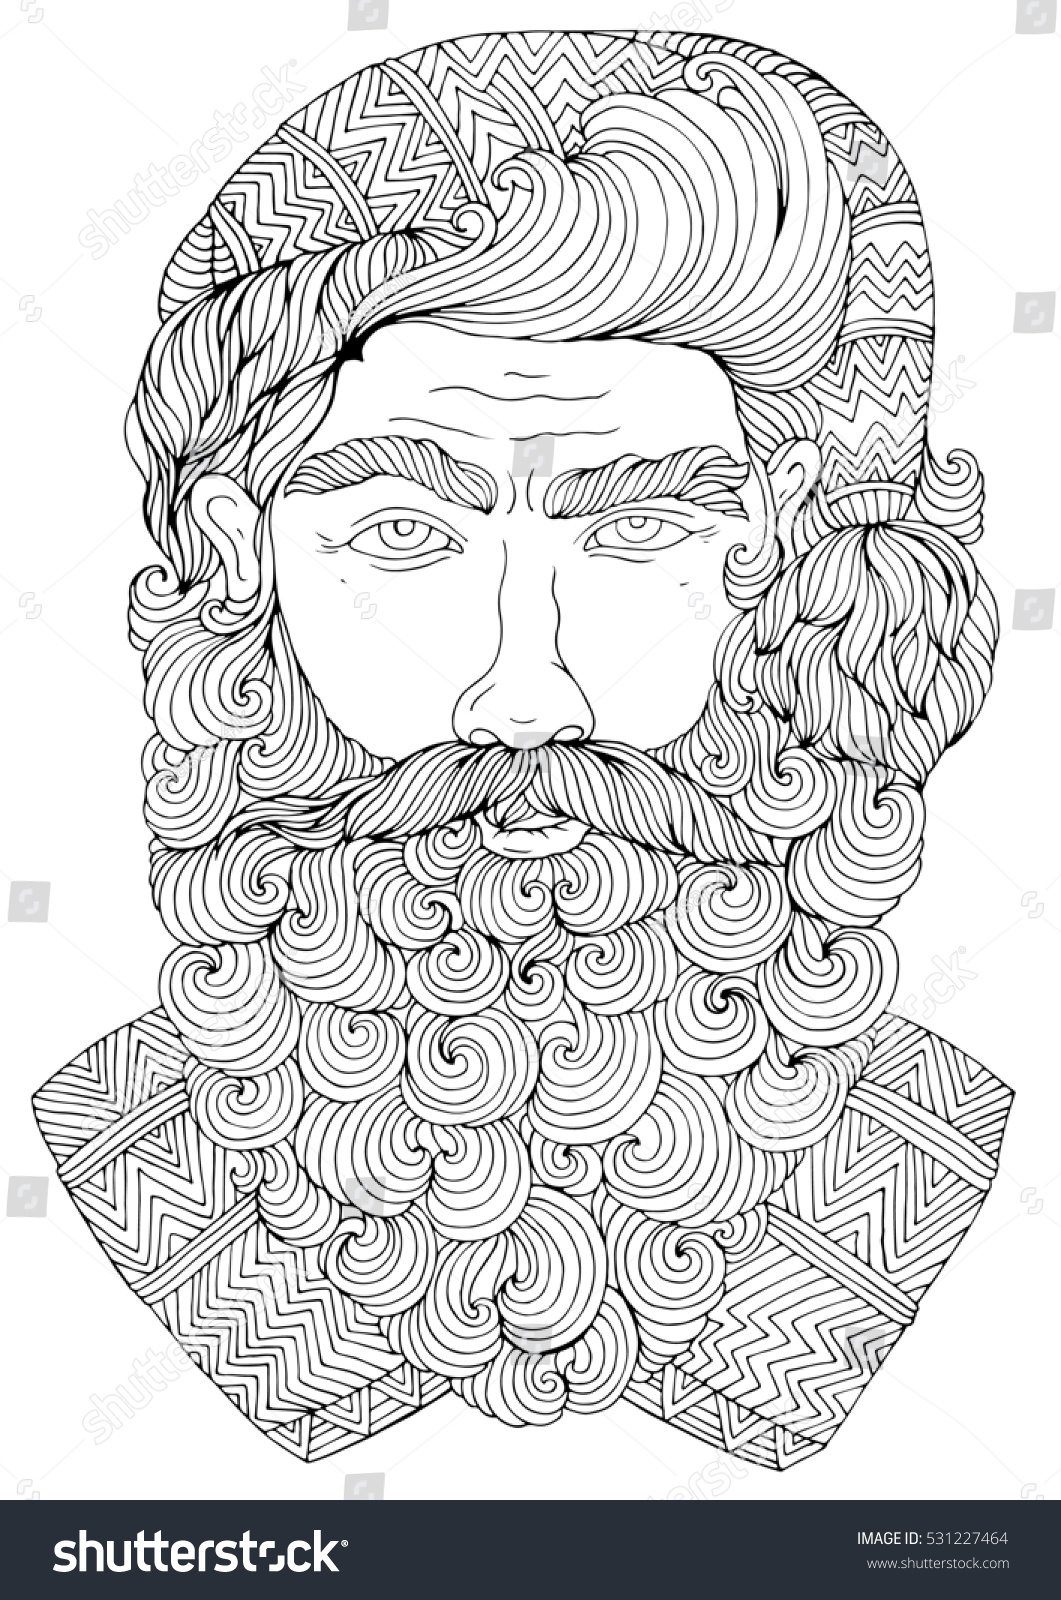 Santa Beard Coloring With Hand Drawn Christmas Portrait Of Hipster Claus A Long